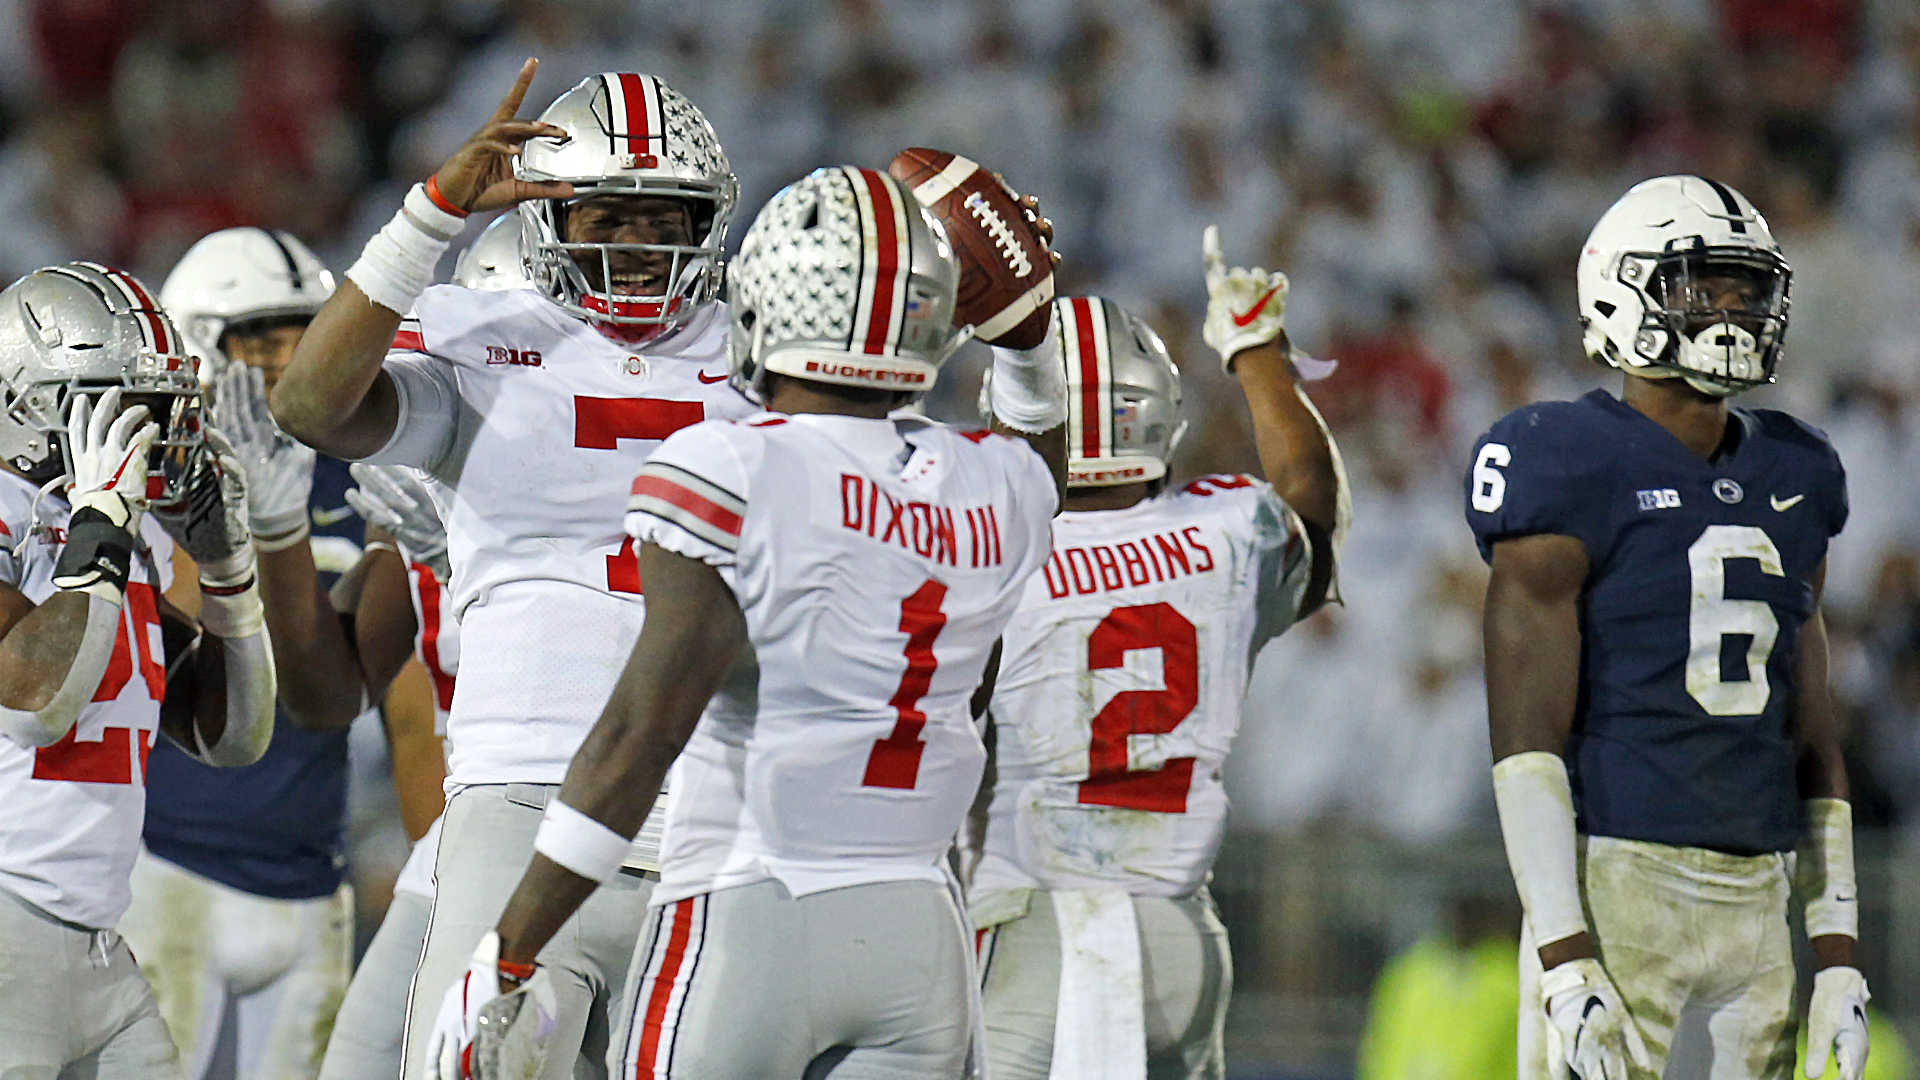 Week 6 bowl projections: Clemson or Ohio State better bet to face Bama?